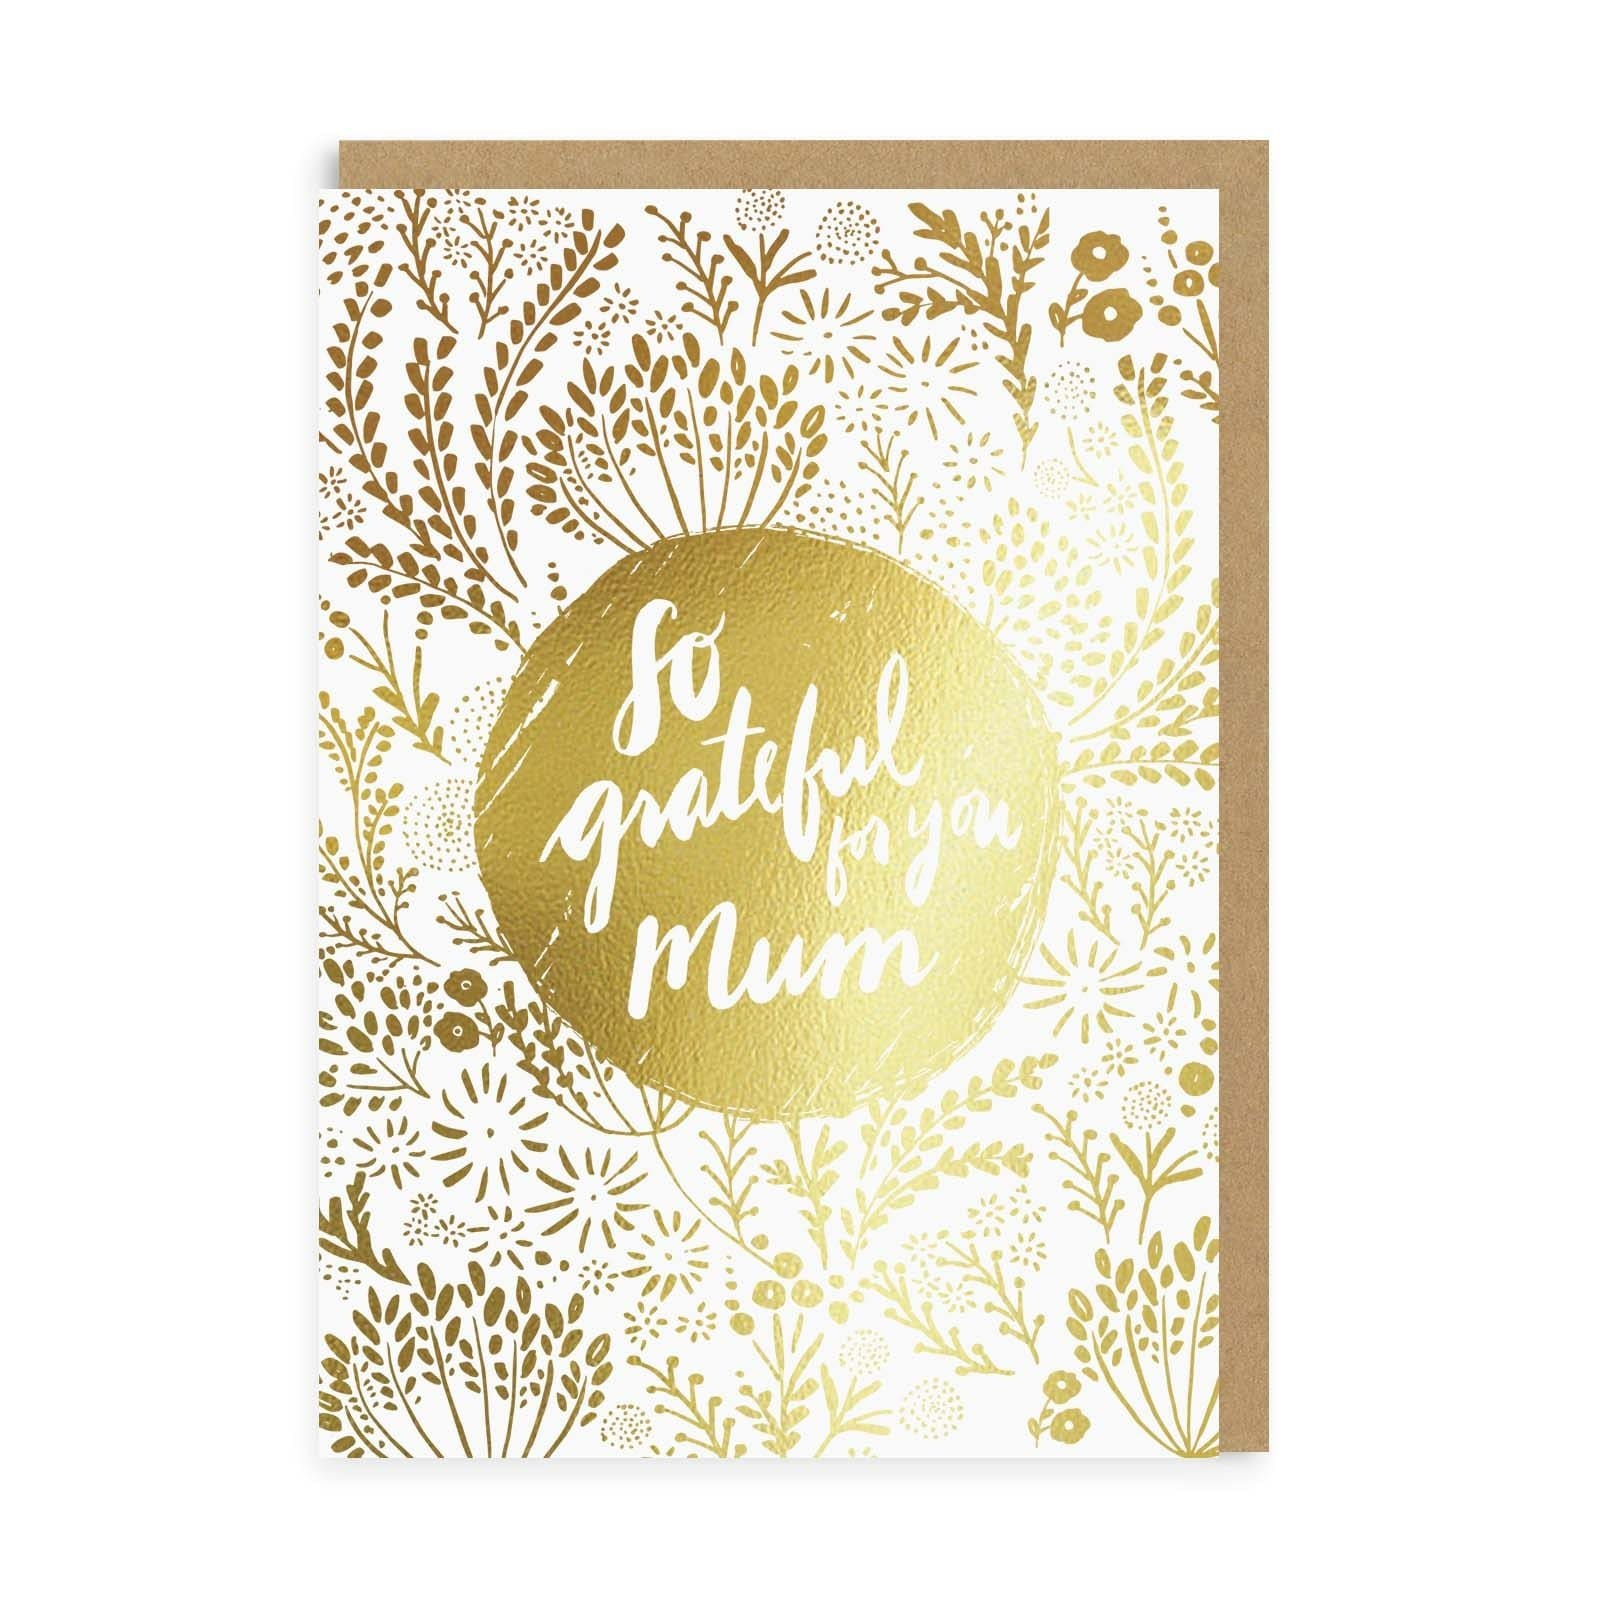 So Grateful Mum Greeting Card